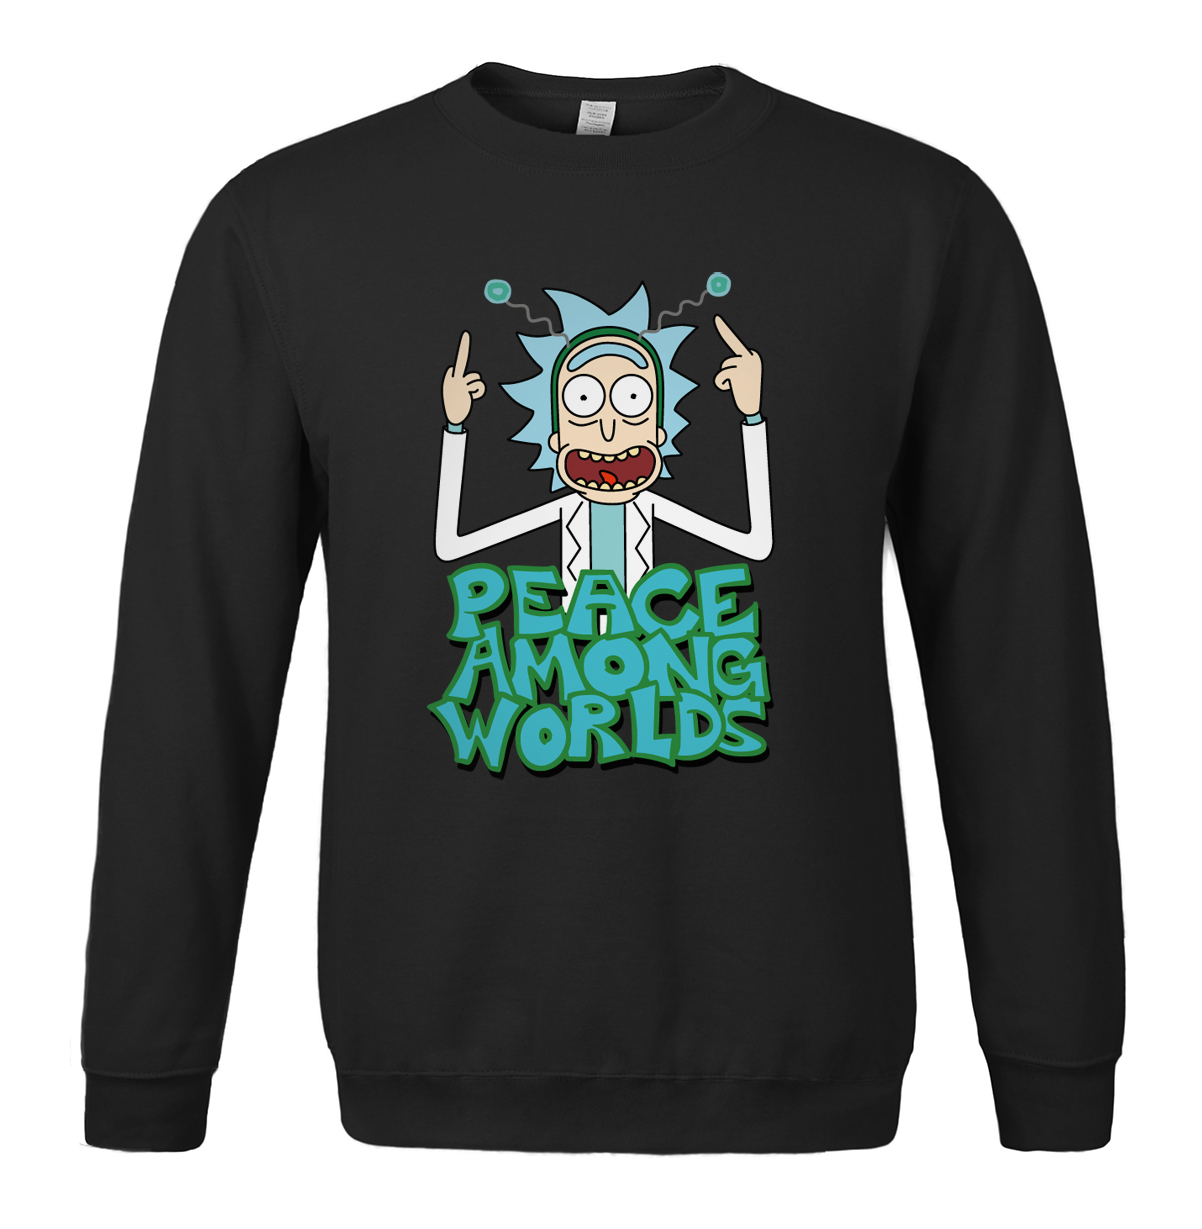 PEACE AMONG WORLDS Print Funny Rick And Morty Hot Sale Sweatshirt Fitness 2019 Spring Autumn Brand Hip Hop Harajuku sweatshirts